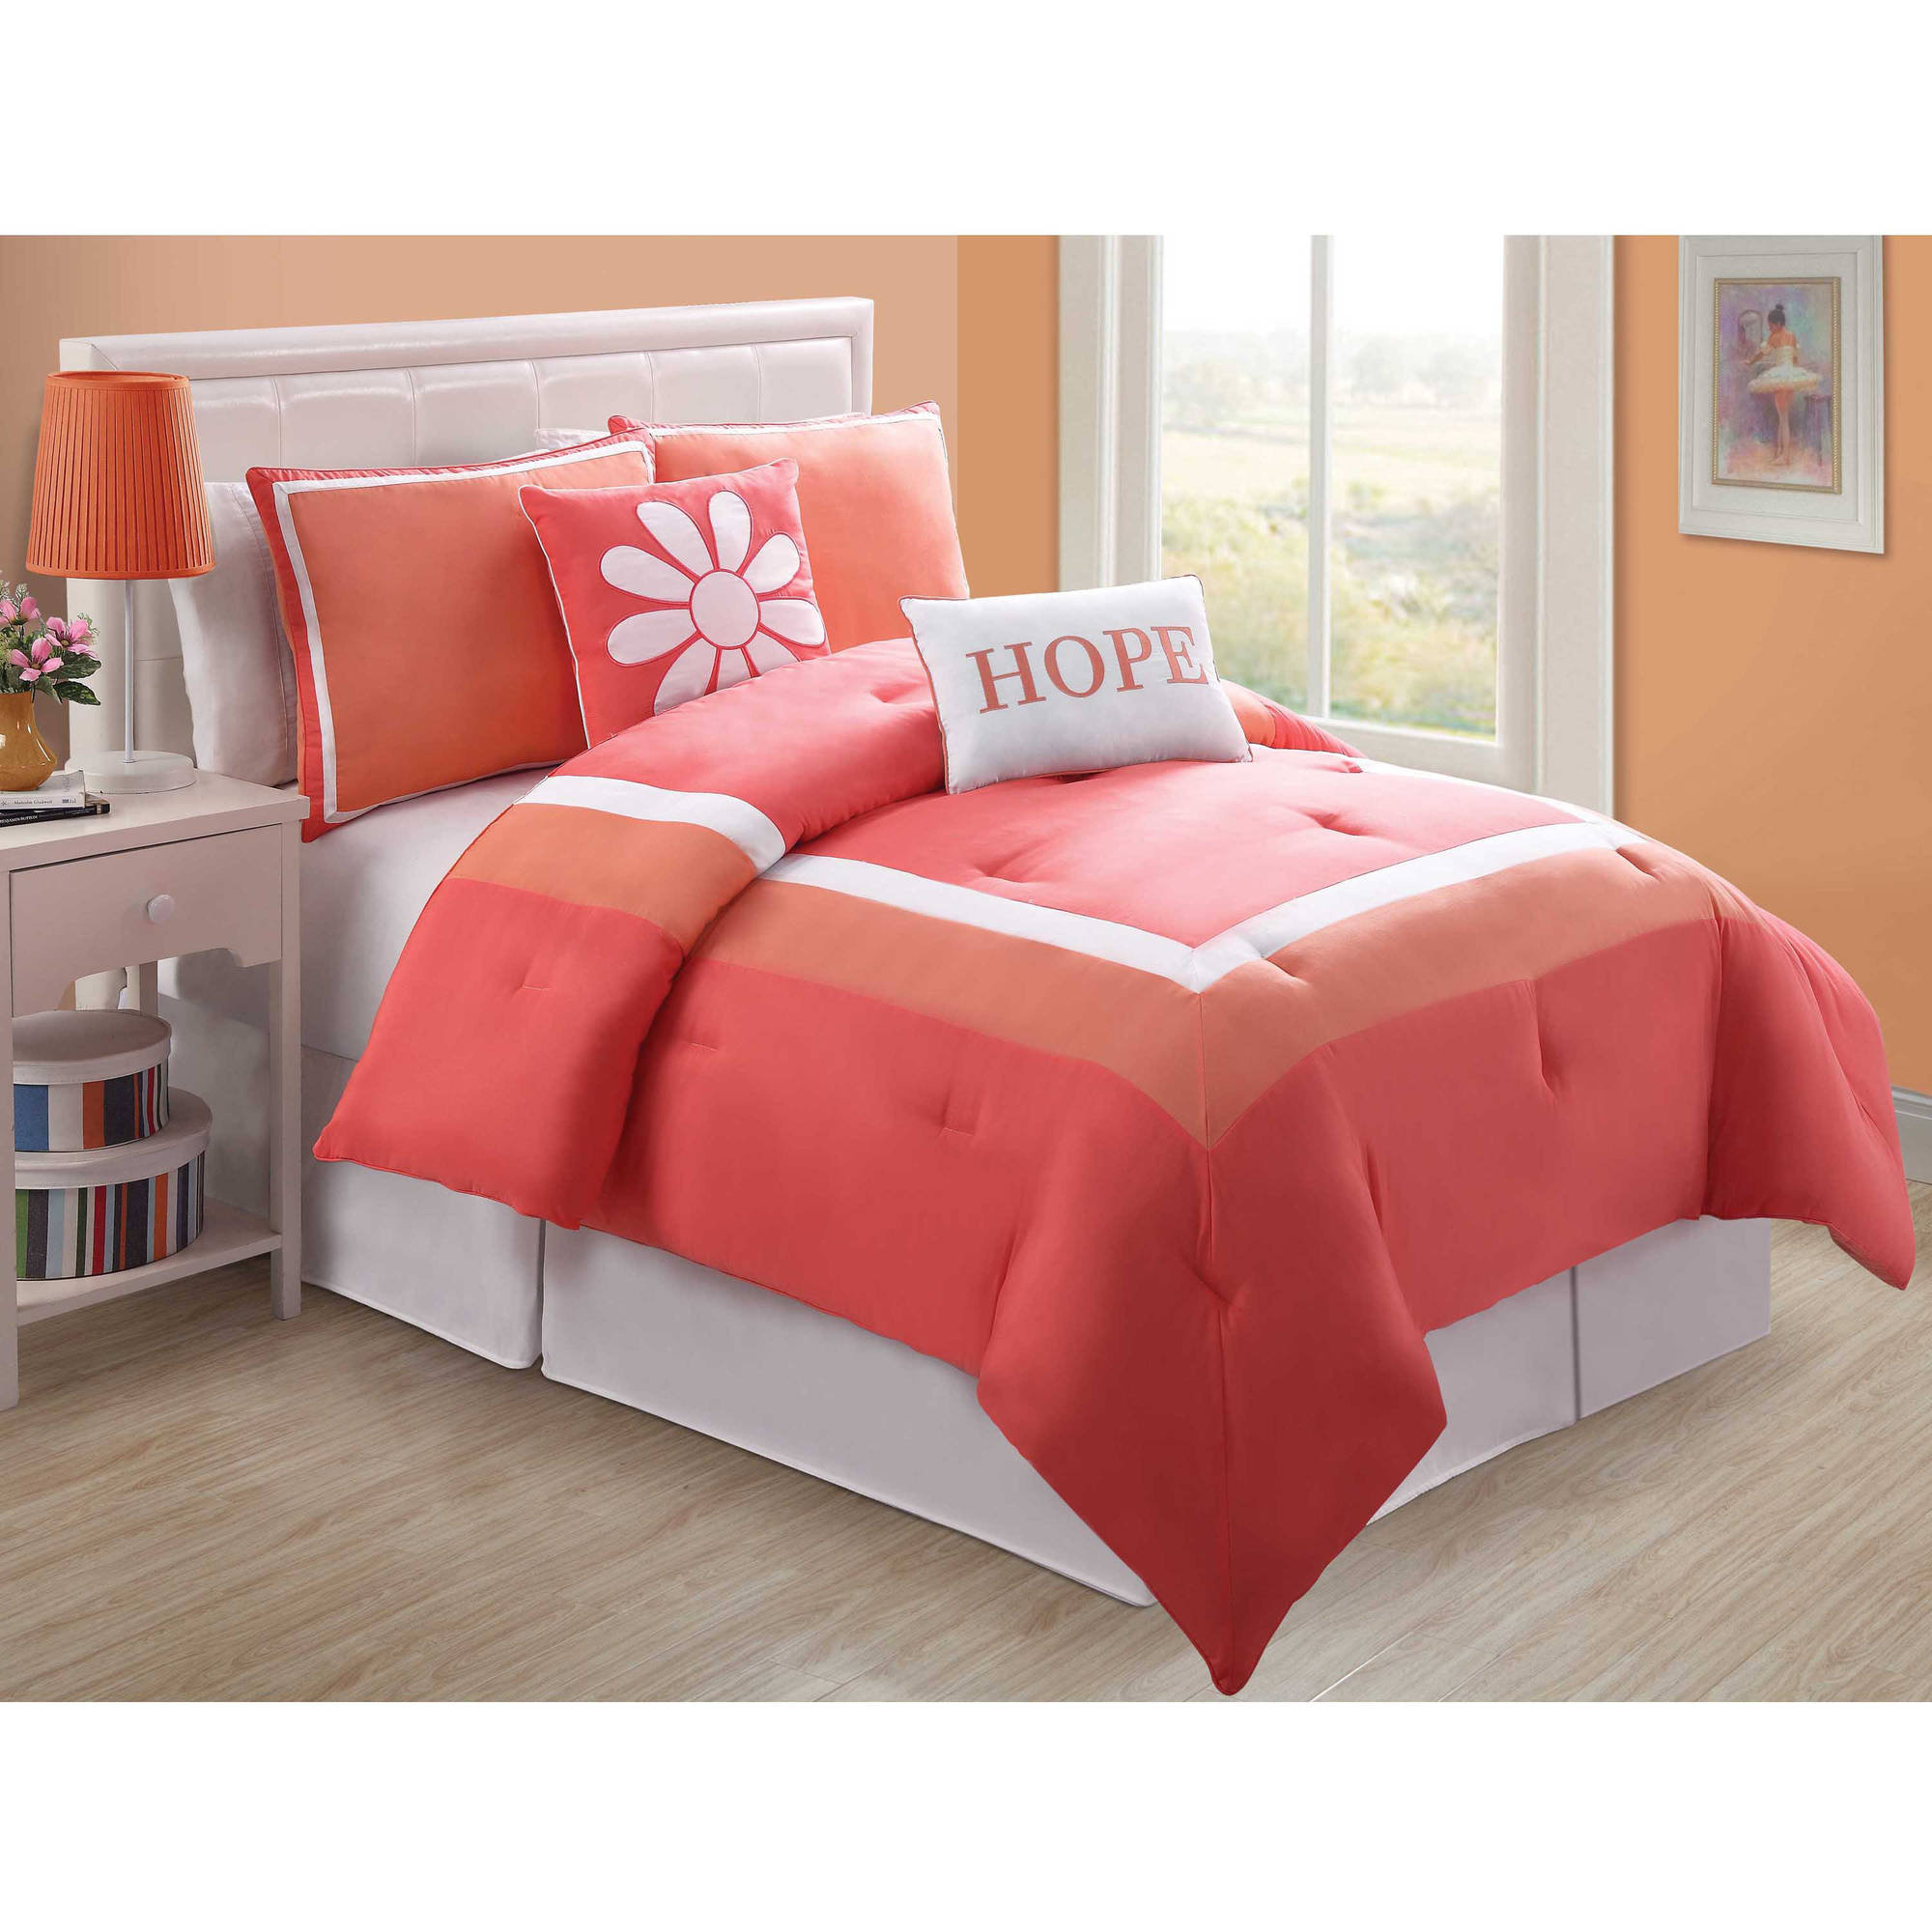 mirimar amazon zone home kitchen comforter mi dp sets queen set full white com